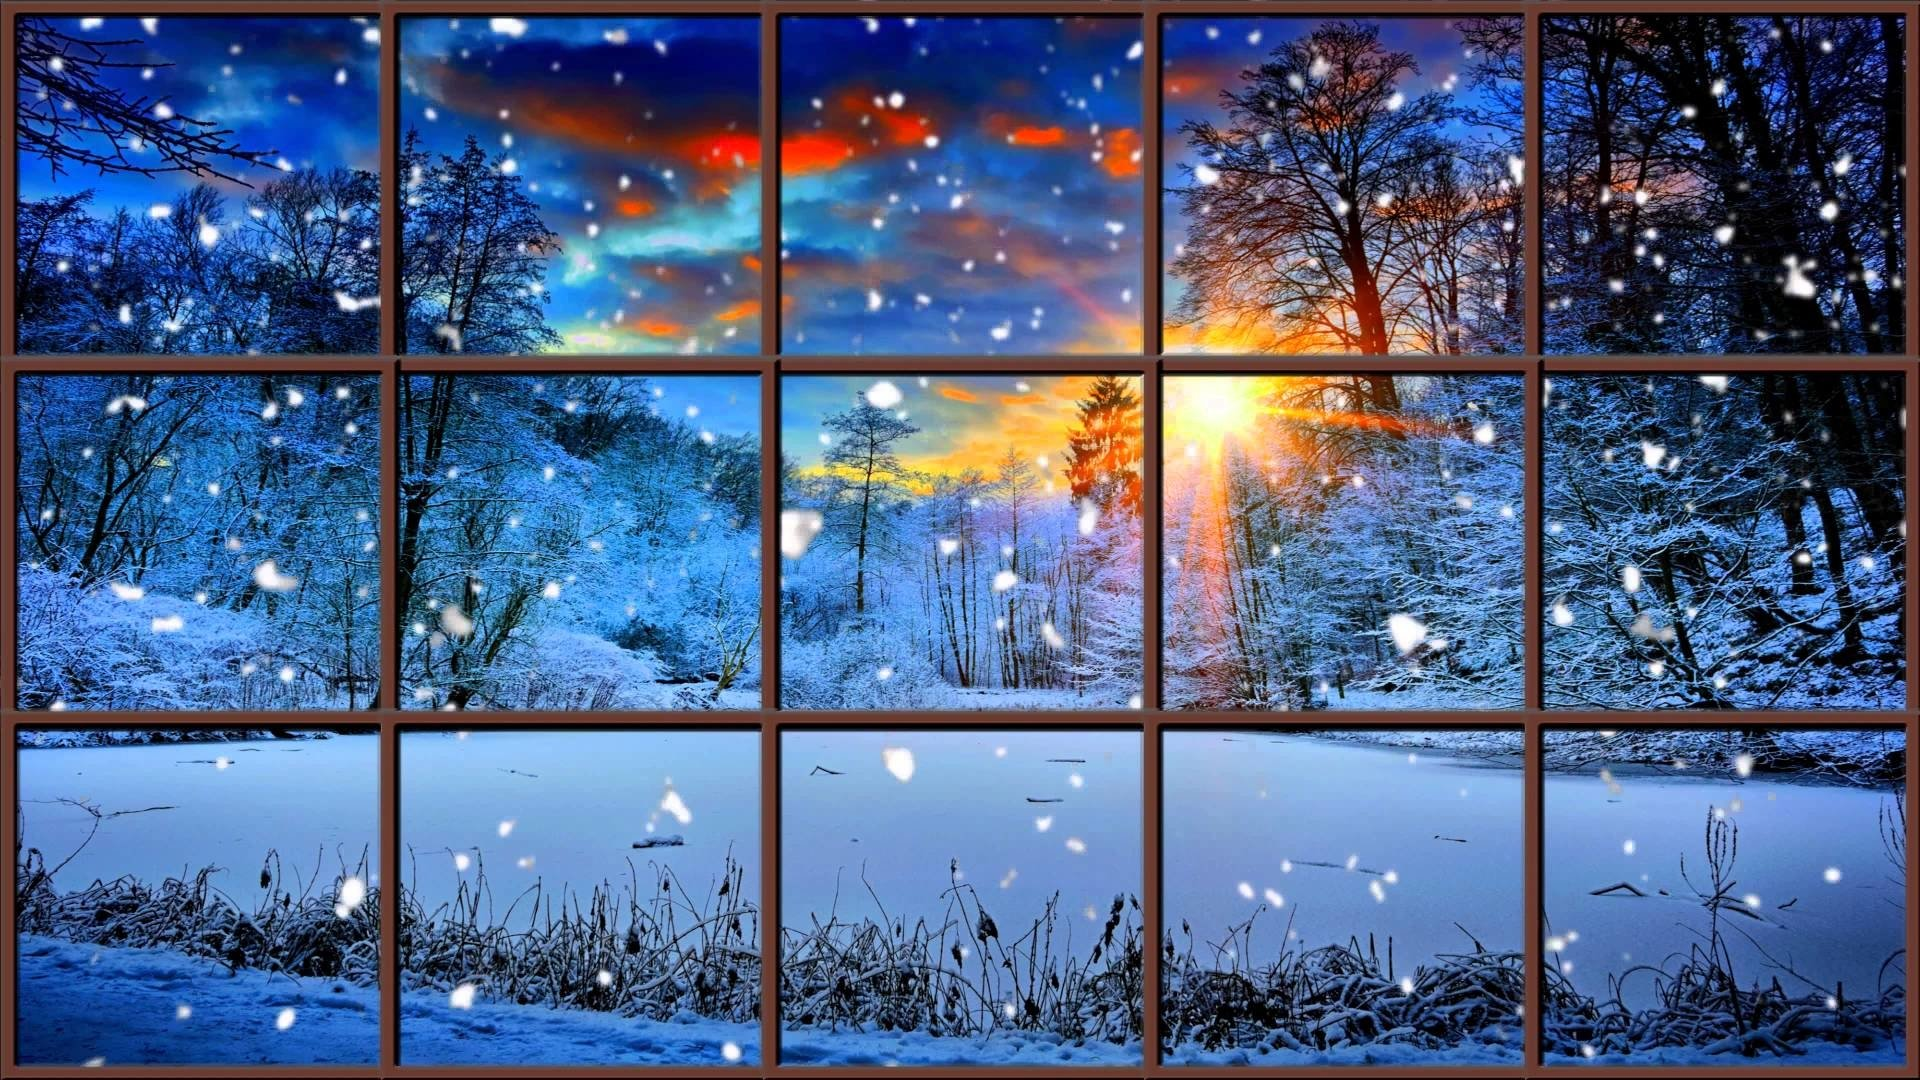 Free Animated Desktop Wallpaper Like Snow Falling On Background Winter View Hd Wallpaper Background Image 1920x1080